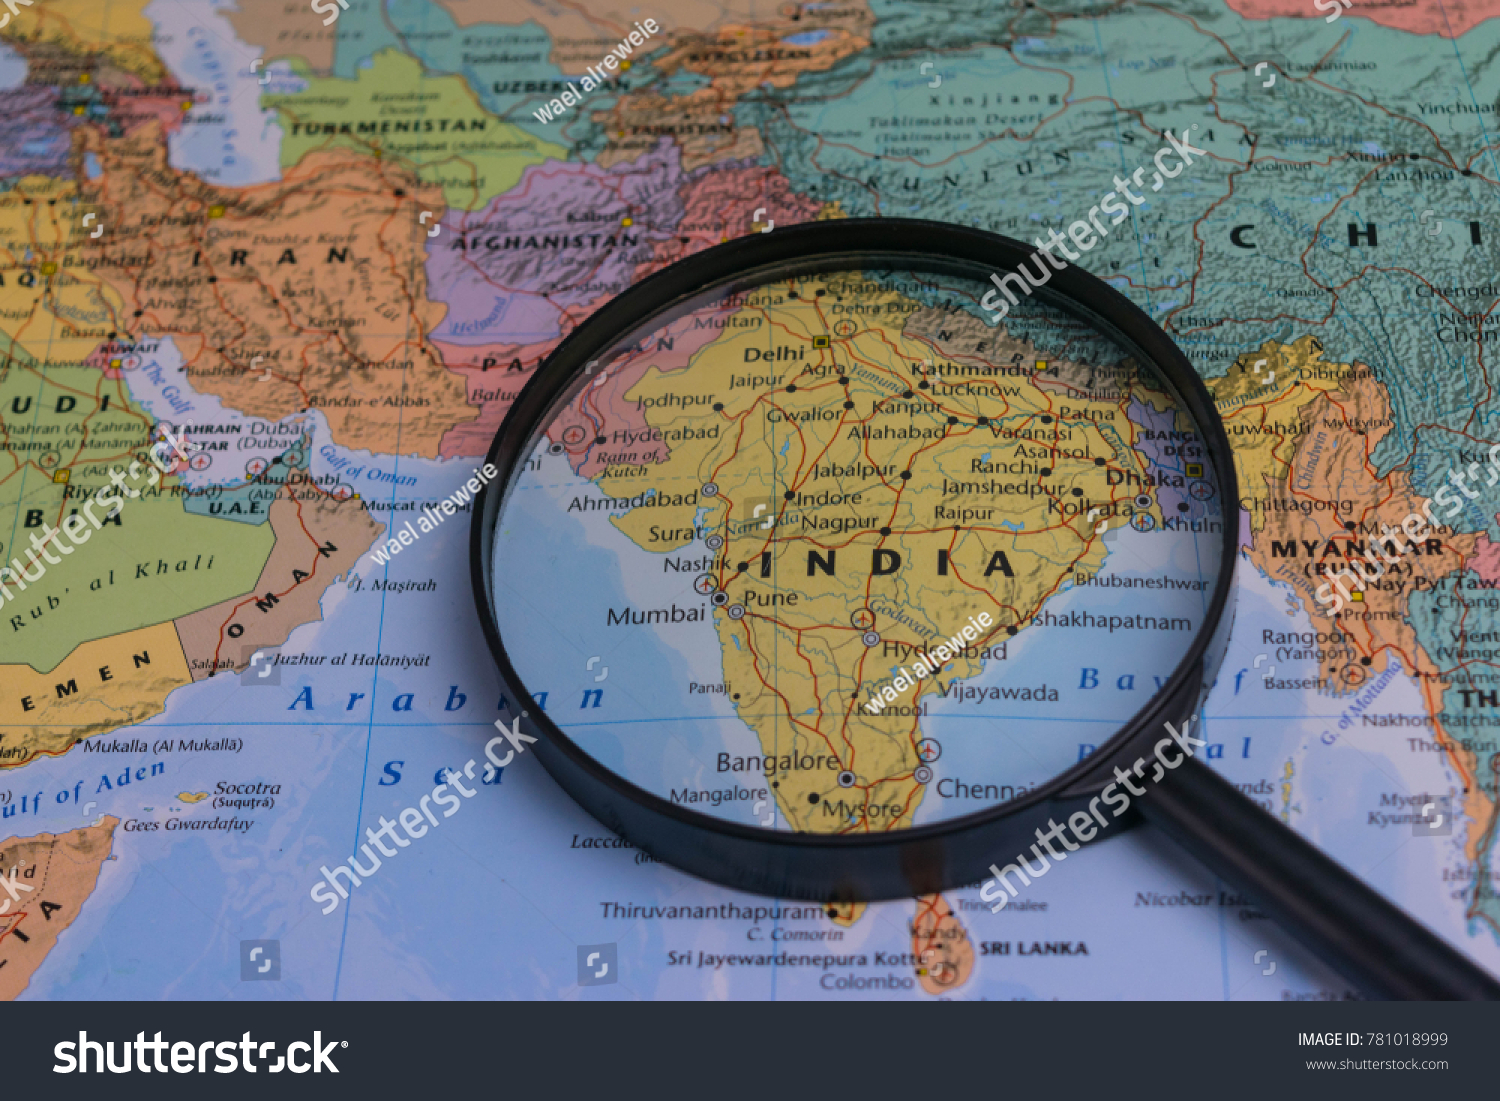 Map india through magnifying glass on stock photo edit now map of india through magnifying glass on a world map publicscrutiny